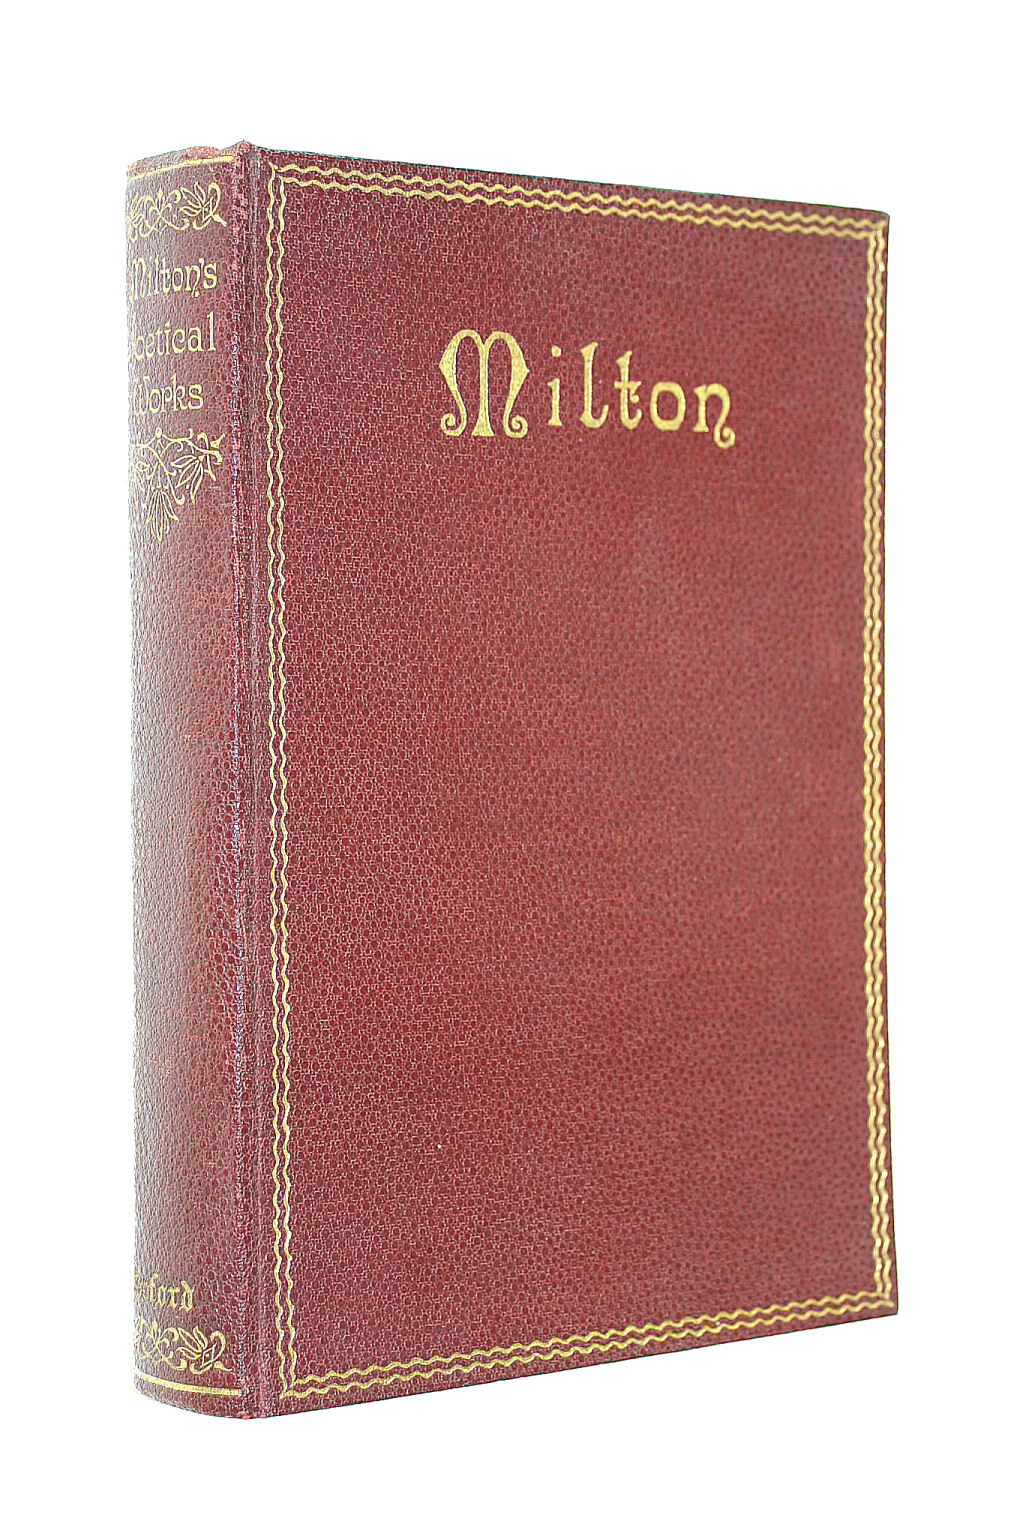 Image for The Poetical Works Of John Milton (New Edition With Translations Of The Italian , Latin And Greek Poems From The Columbia University Edition And A Readers Guide By W Skeat)